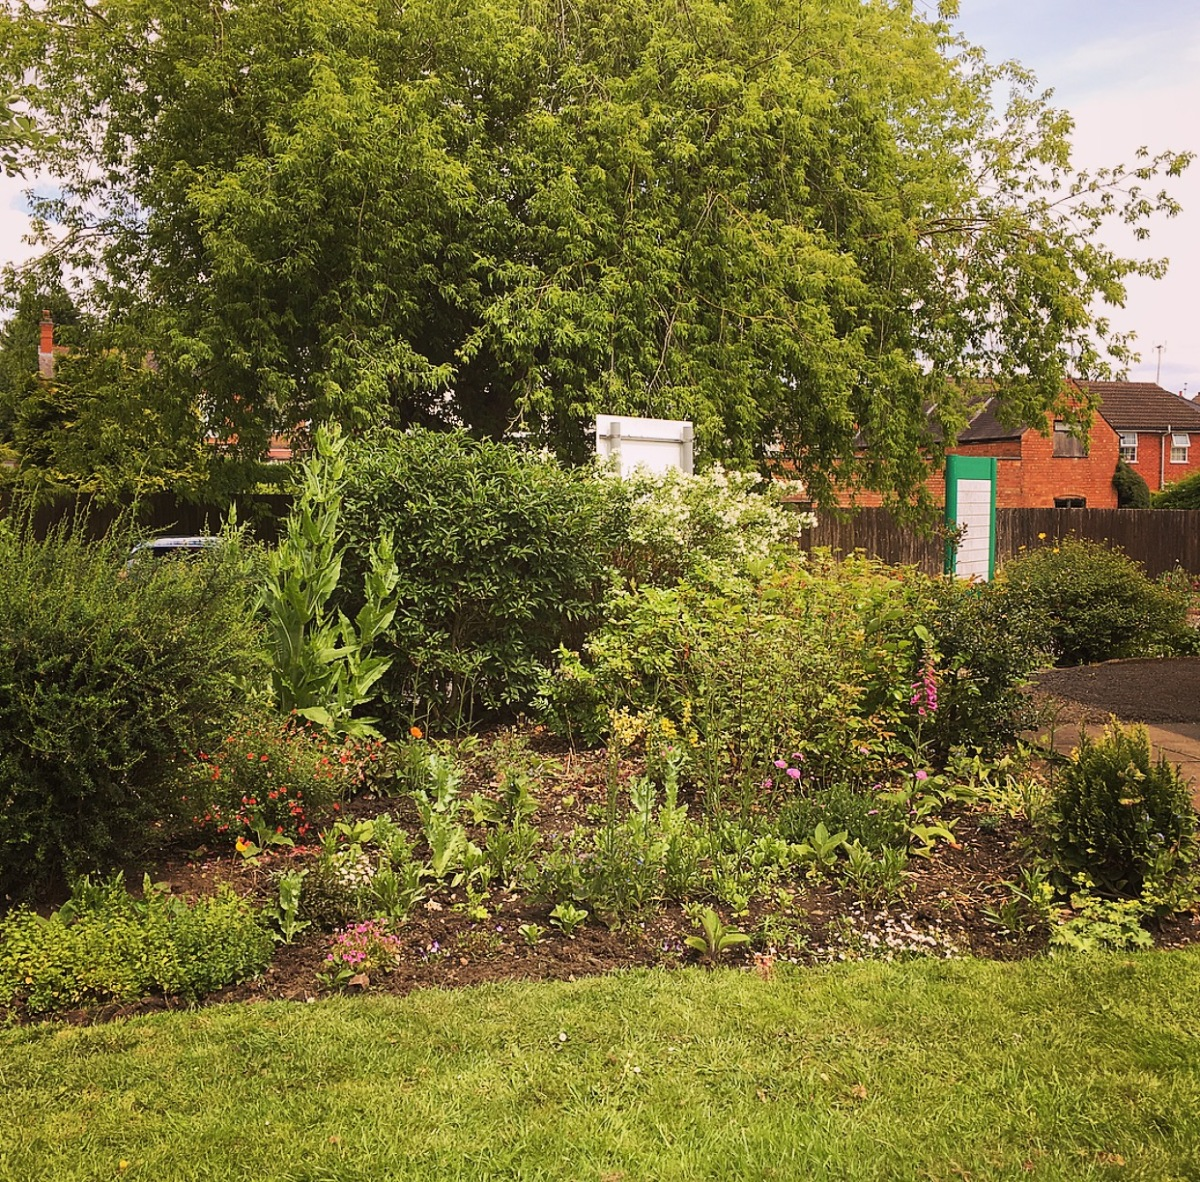 Anstey Library Community Garden: Almost One Year Later